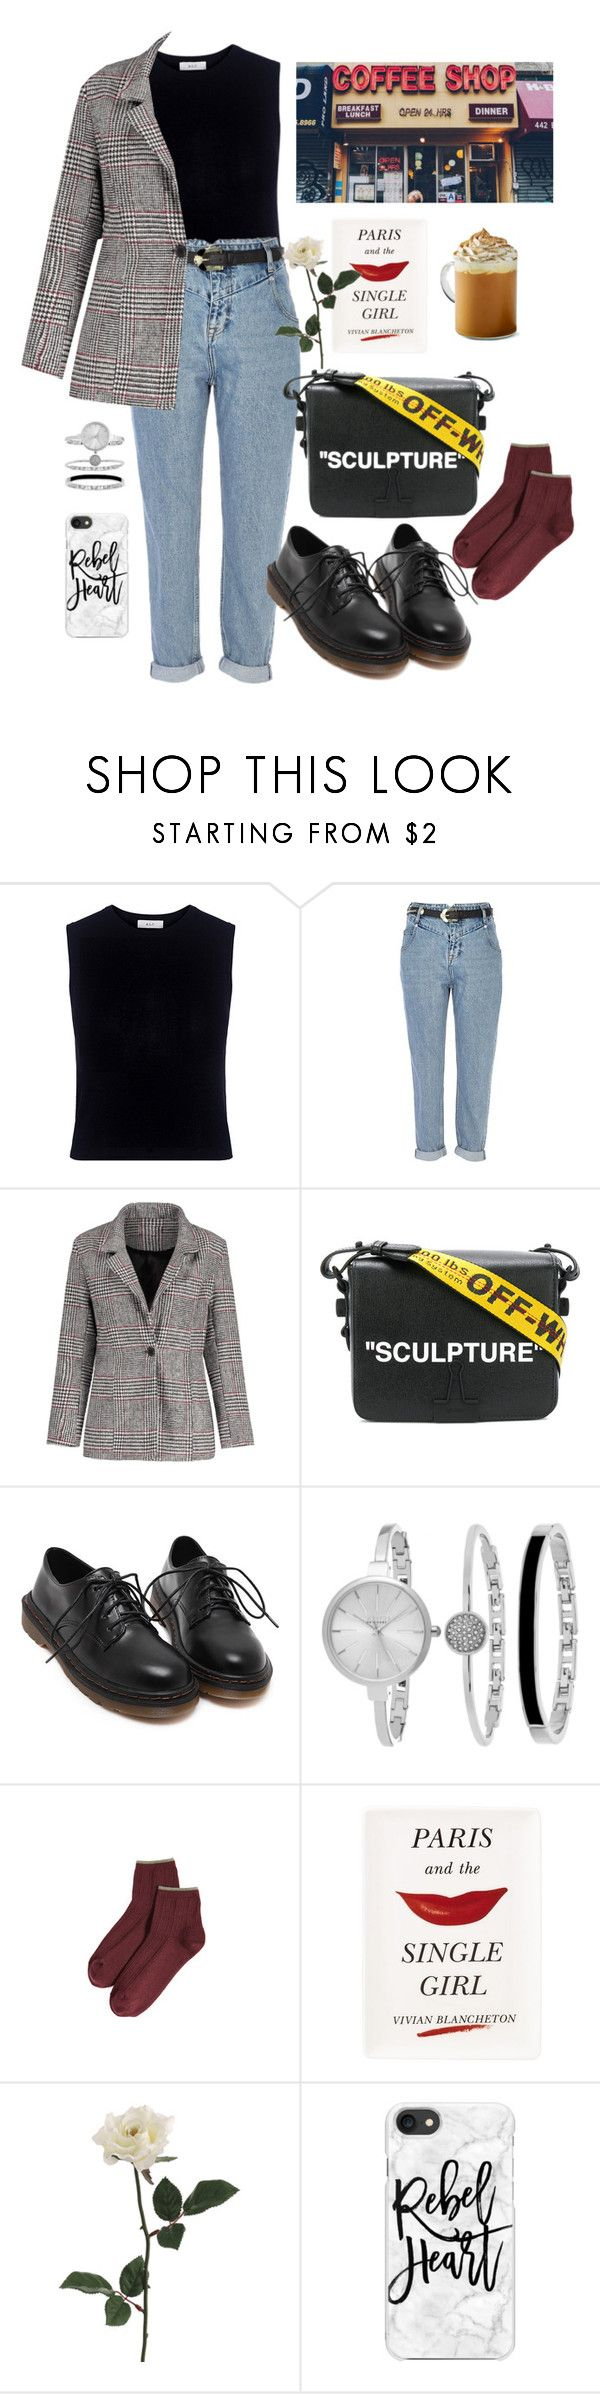 """Untitled #25"" by dwikartks ❤ liked on Polyvore featuring Mother of Pearl, River Island, Off-White, SO & CO, Madewell, Kate Spade and Casetify"